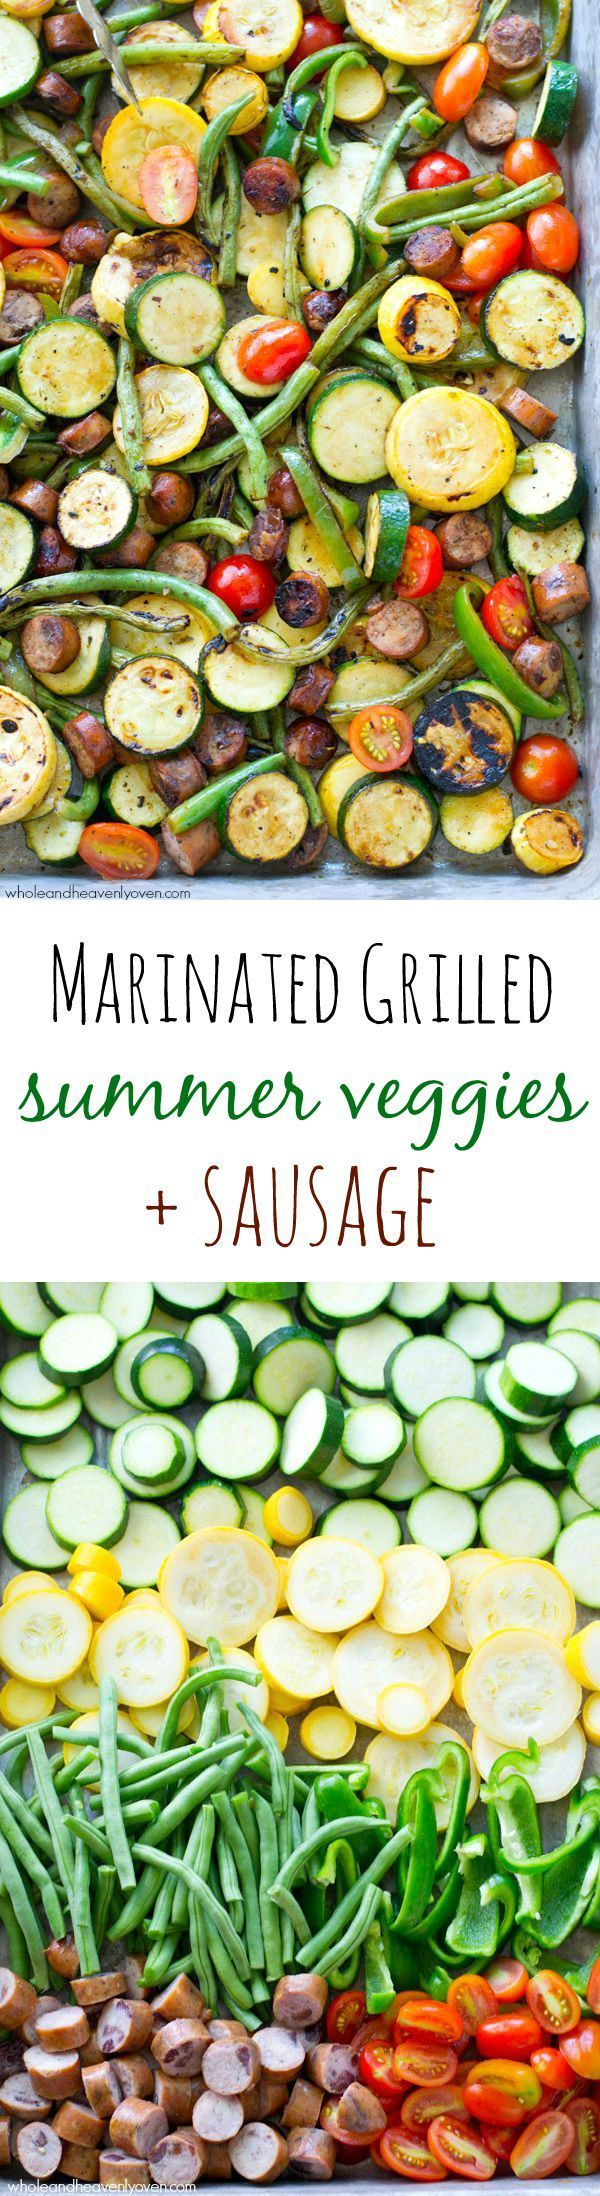 These flavorful grilled veggies are loaded with so much healthy summer veggie goodness and plenty of sausage to satisfy both meat-lovers and veggie-lovers! @Sarah | Whole and Heavenly Oven